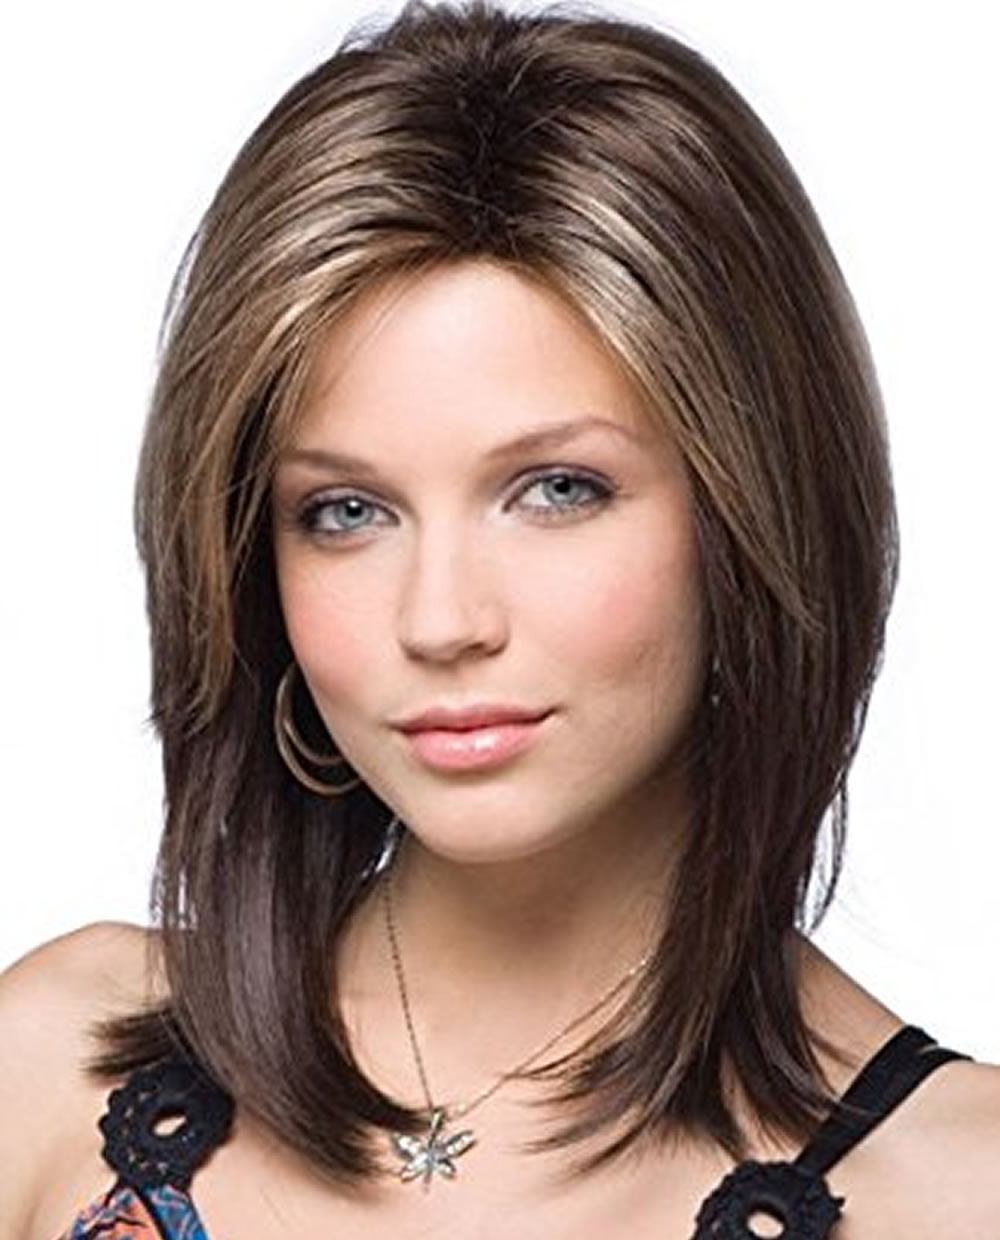 Layered Long Bob Hairstyles and Lob Haircuts 2018 - HAIRSTYLES